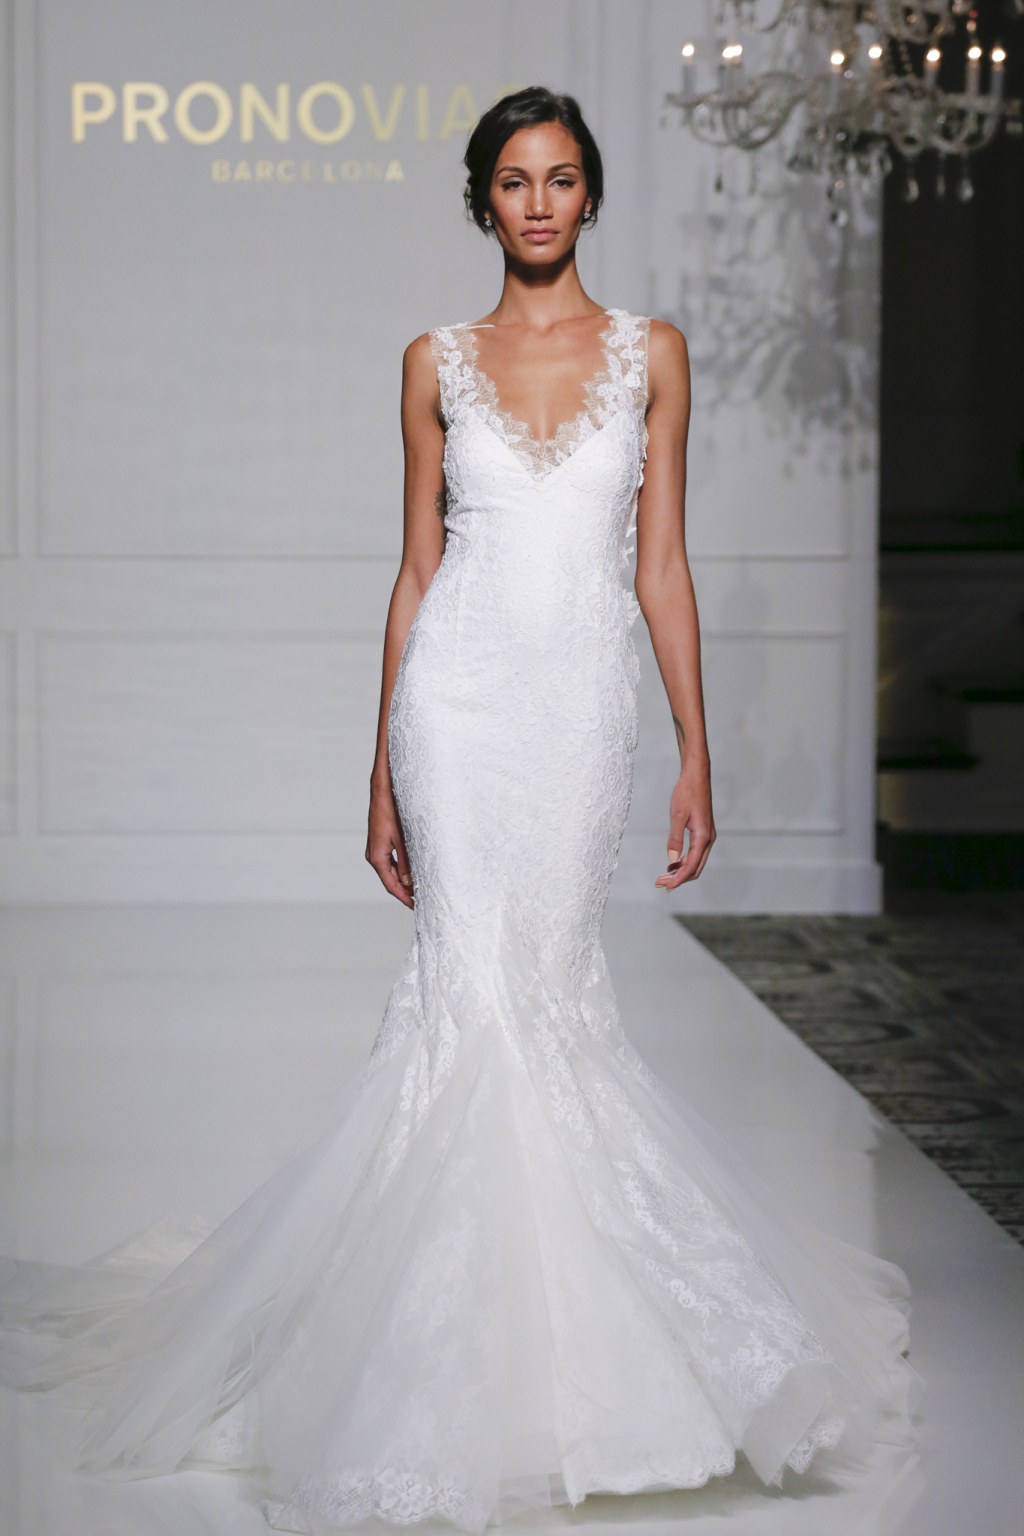 Wedding Gowns New York Stores : Pronovias fall wedding dress collection arabia weddings